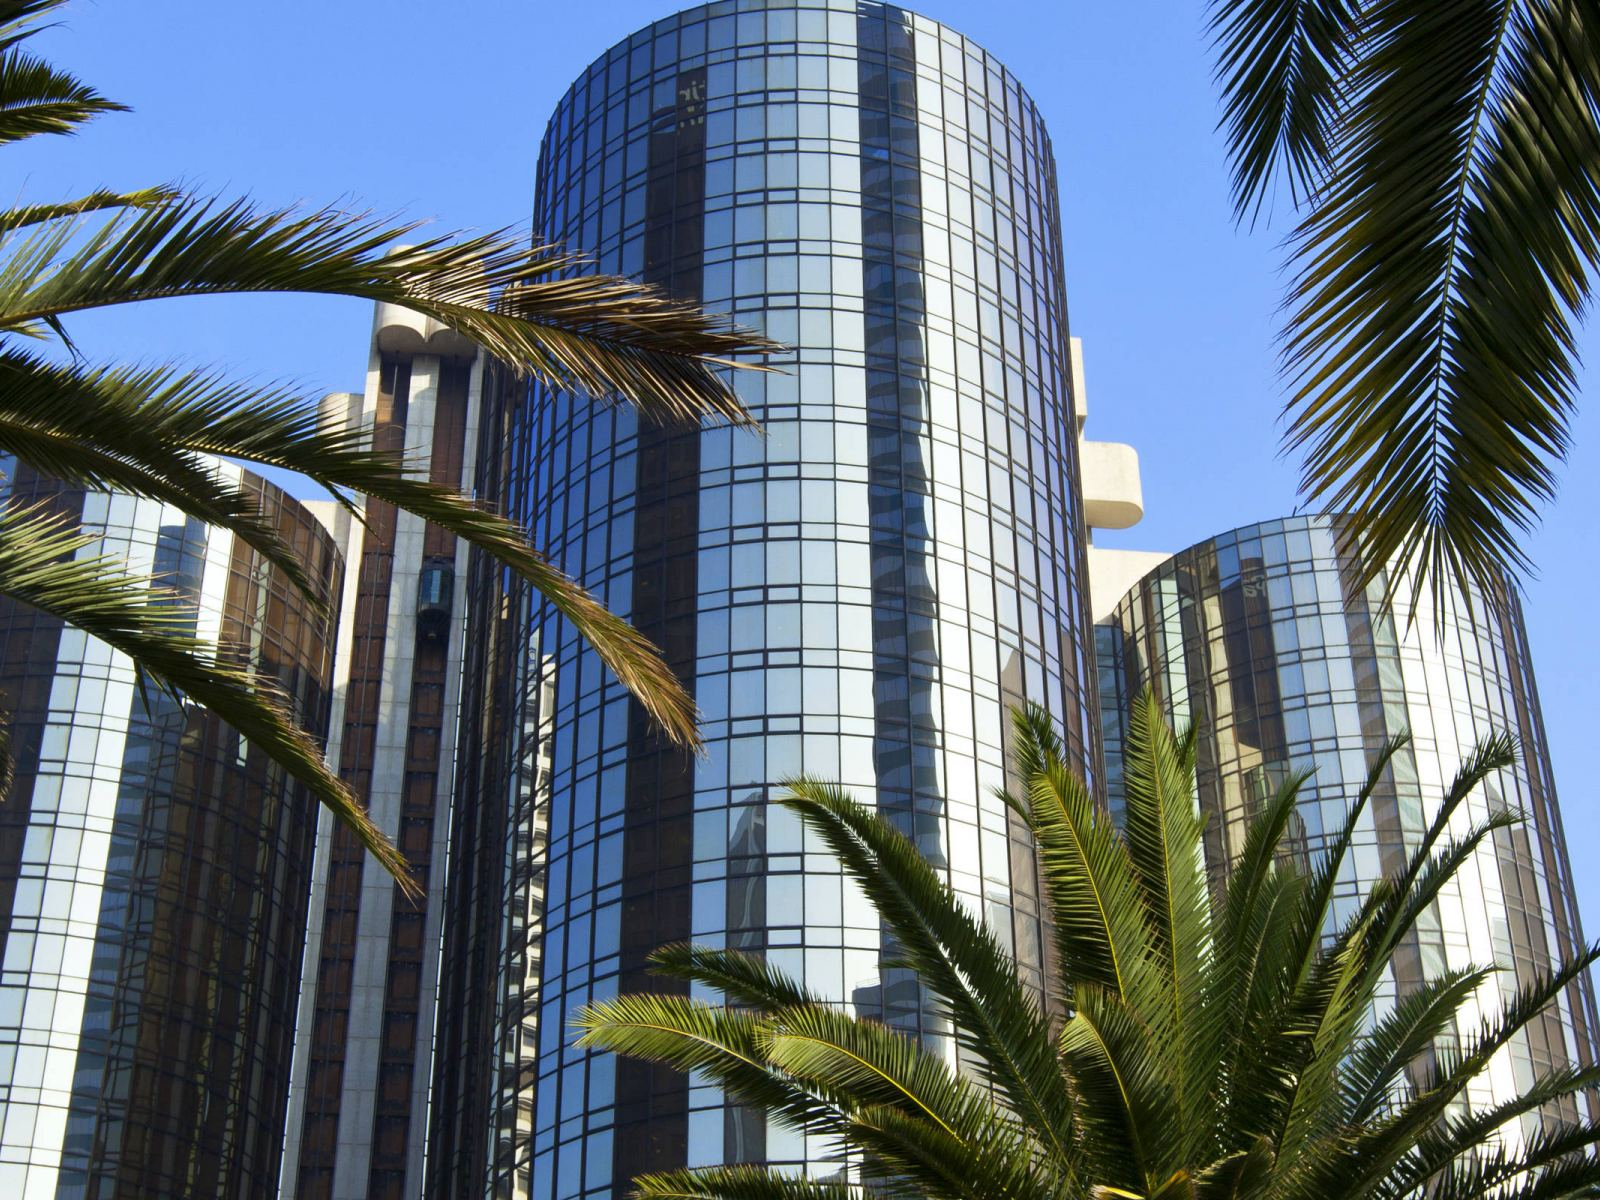 The Westin Bonaventure Hotel & Suites in Downtown L.A.